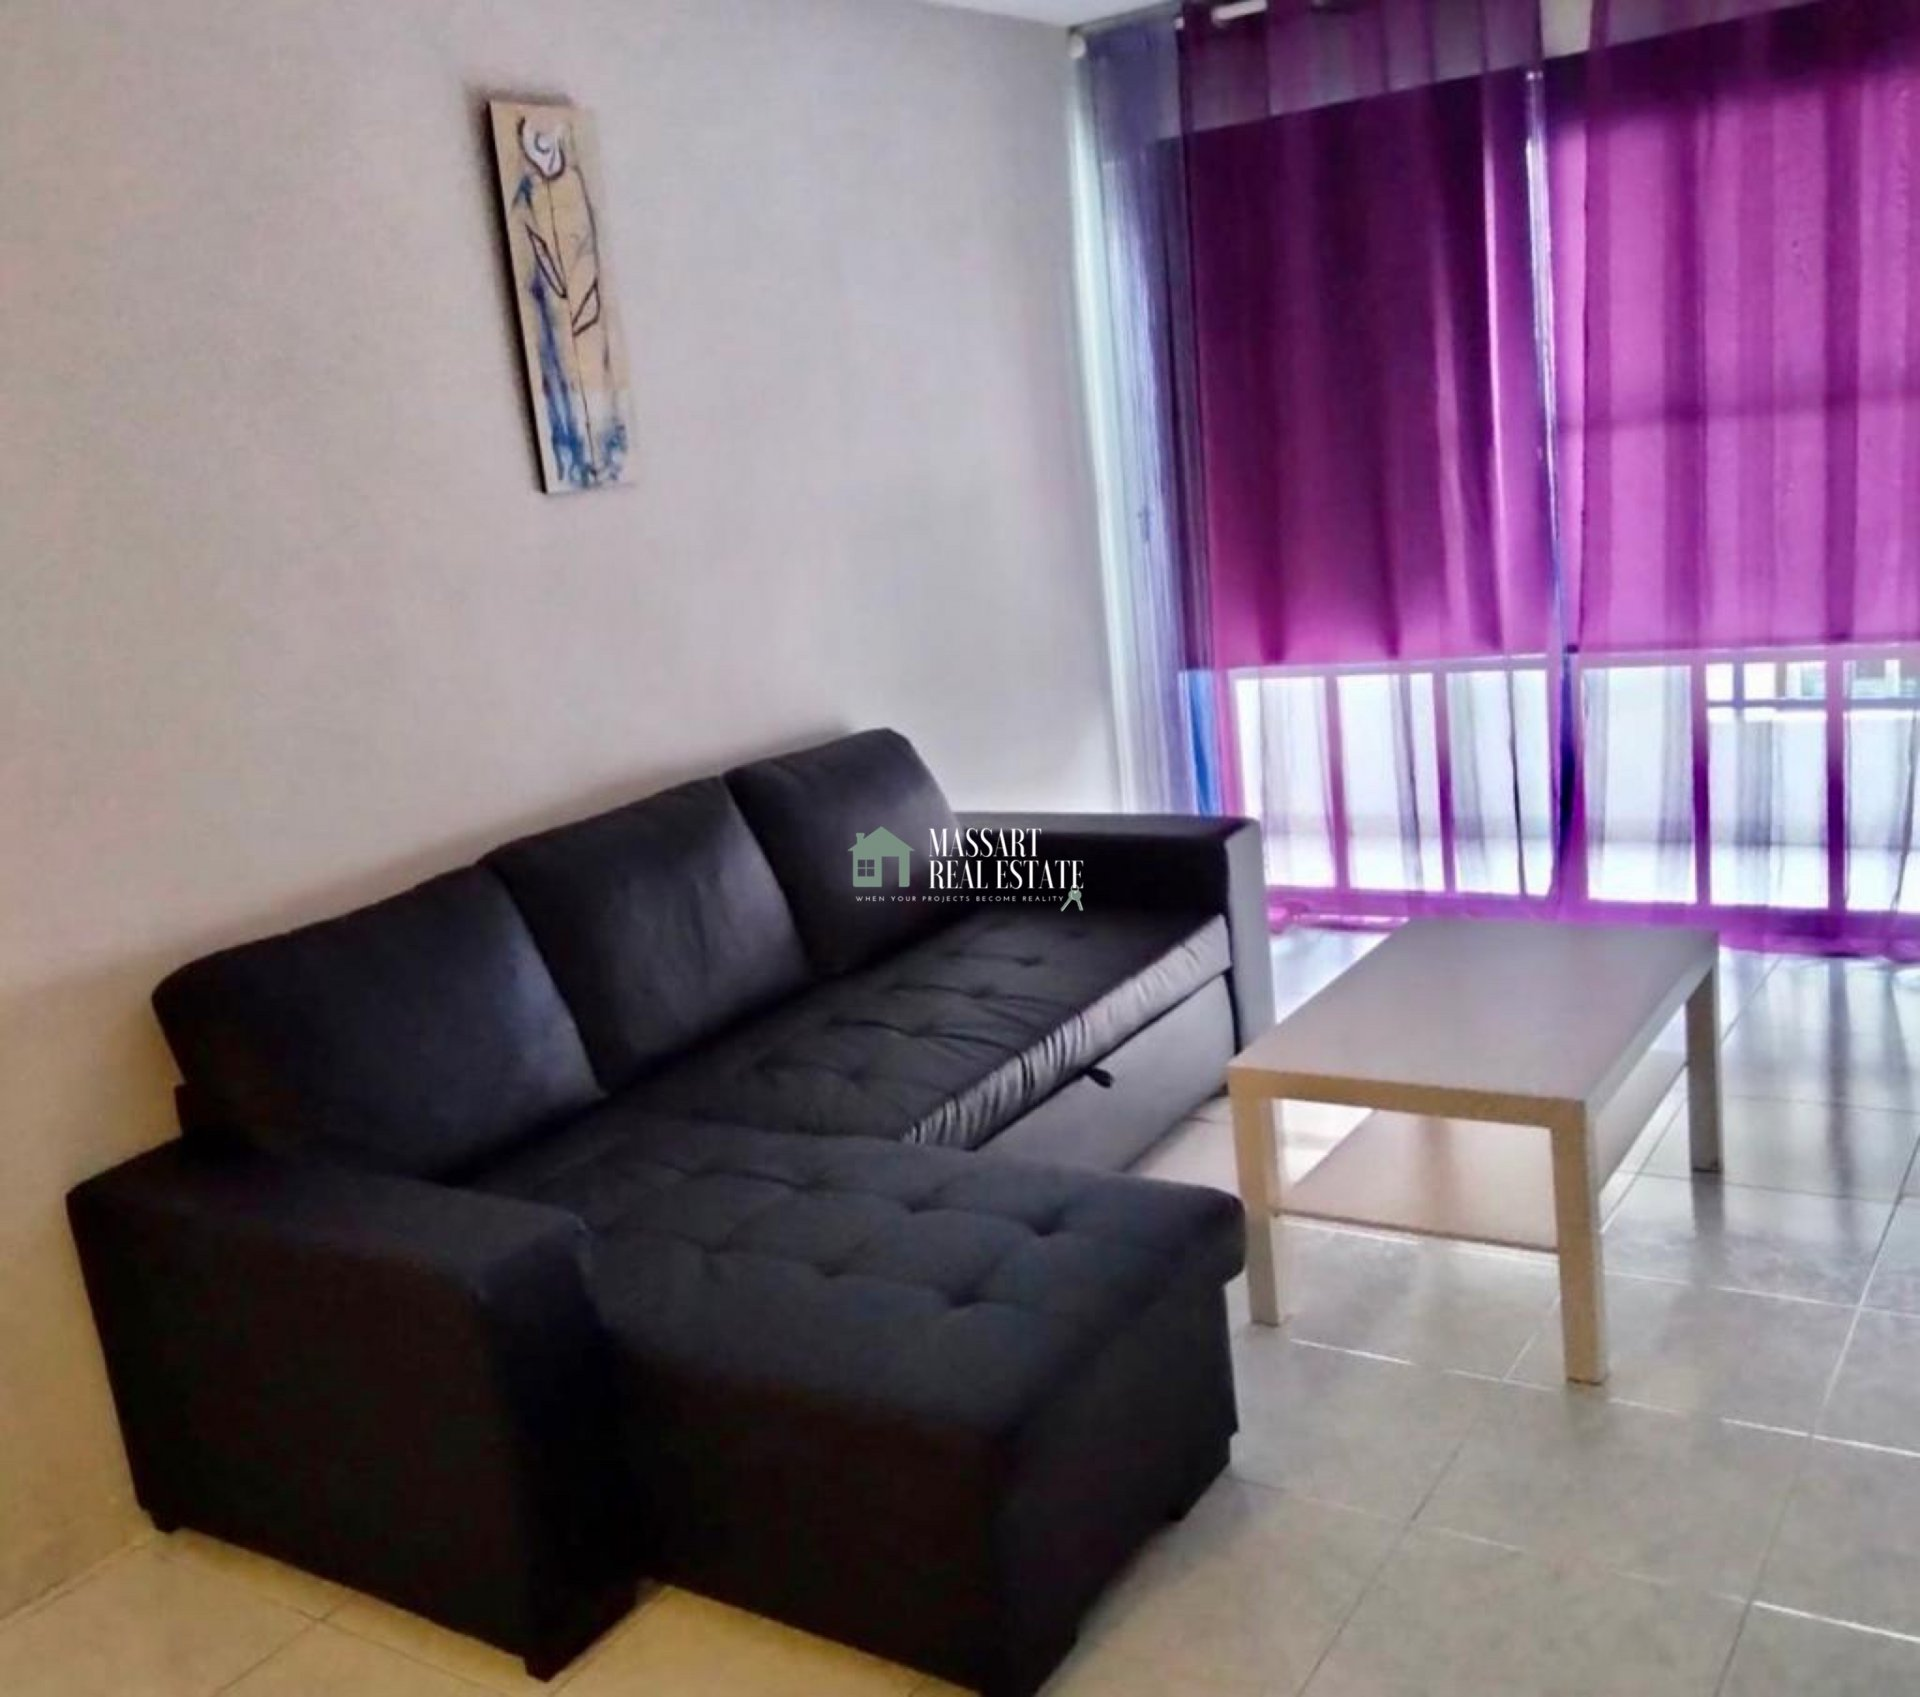 Apartment of 55 m2 fully furnished and characterized by its strategic location, in the central area of Adeje with all services in its surroundings.